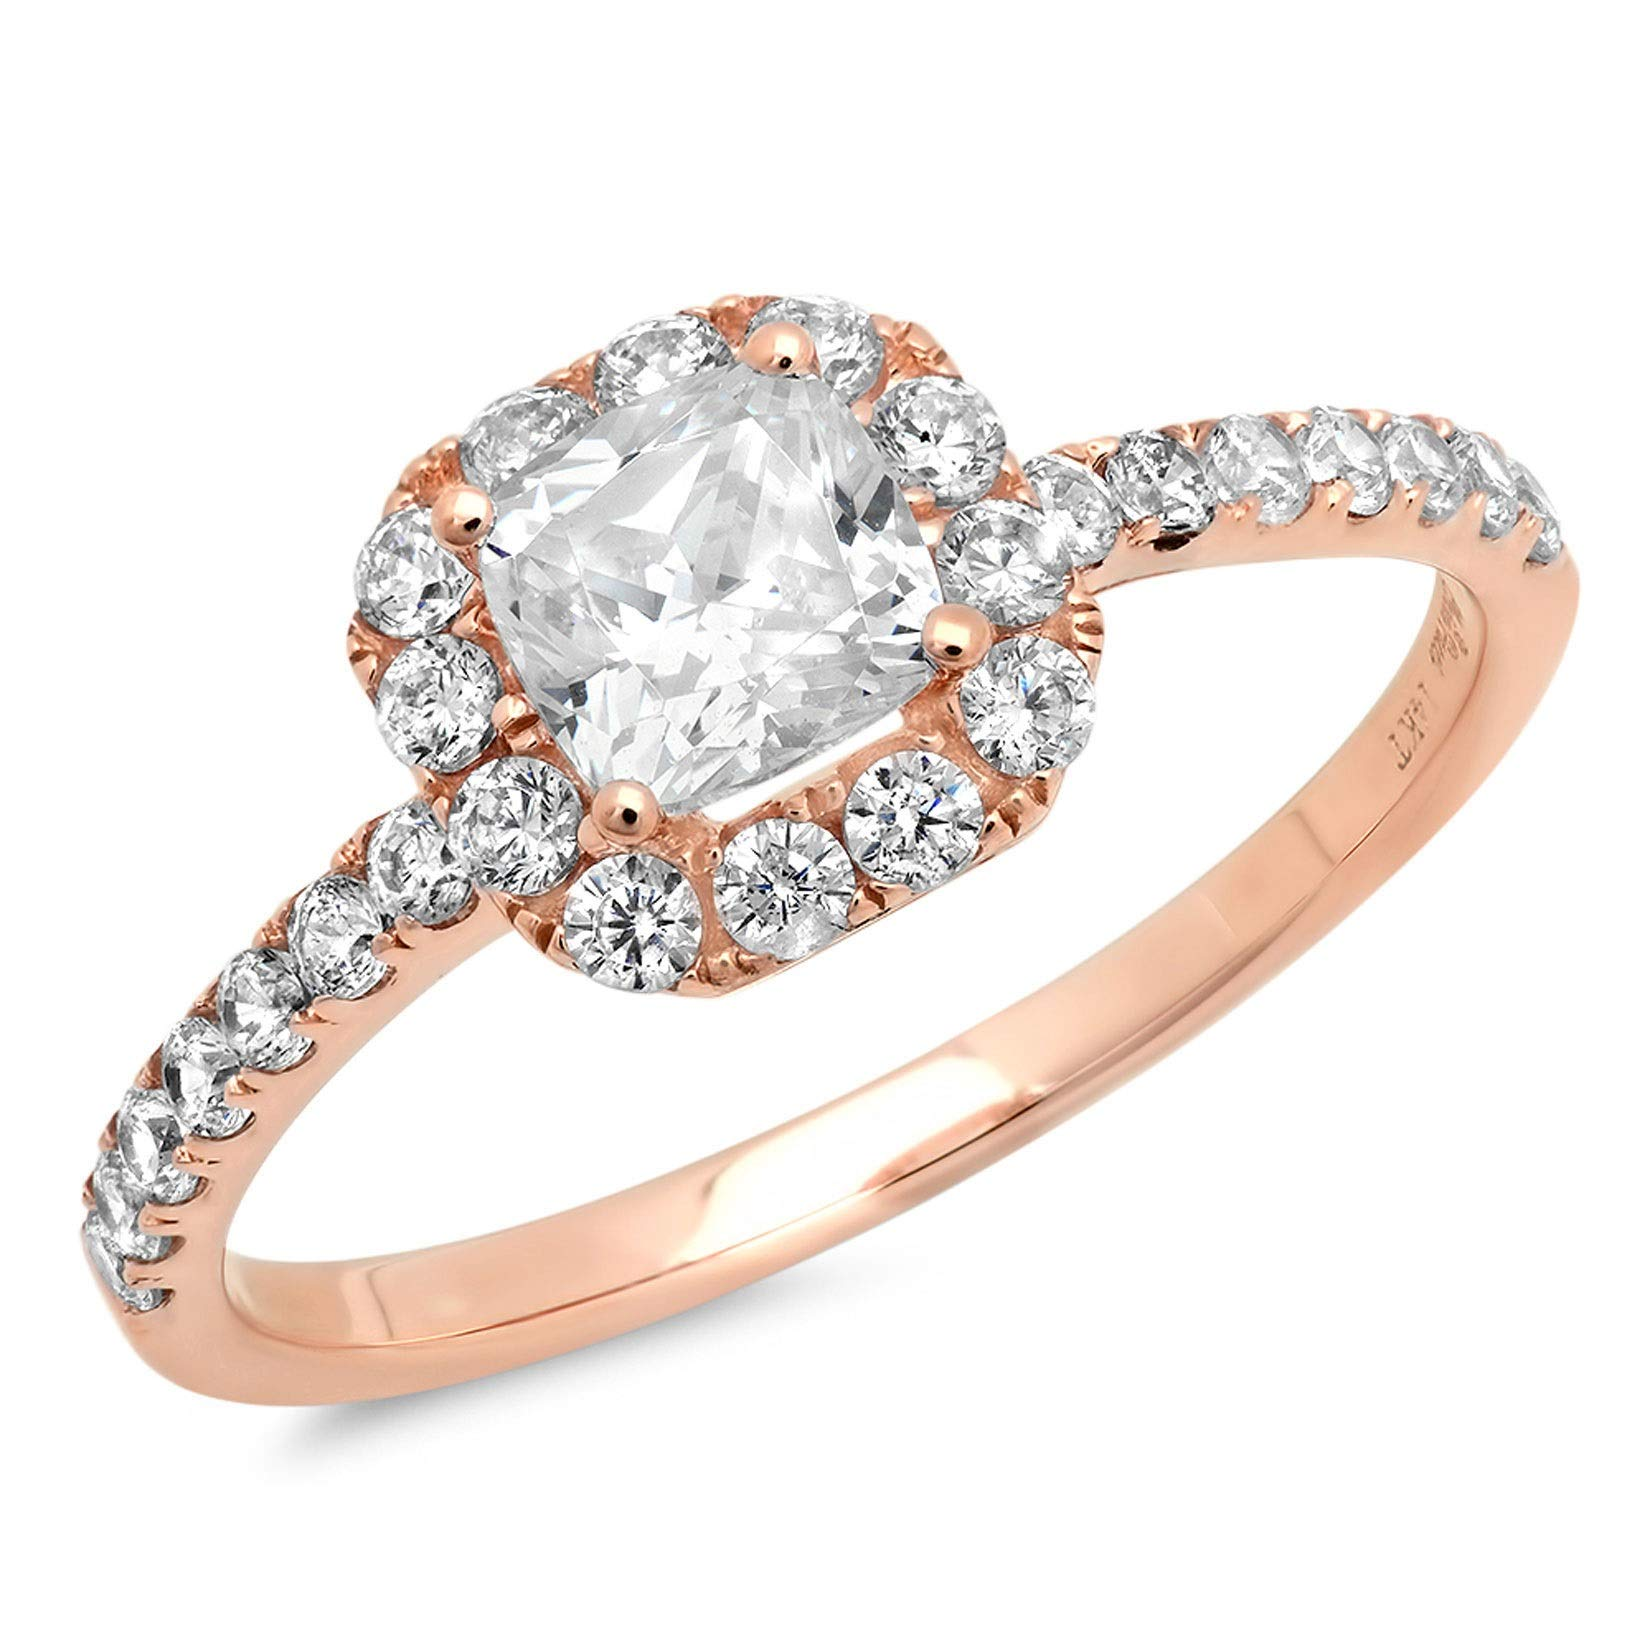 1.37ct Brilliant Princess Cut Solitaire with accent Highest Quality Moissanite Ideal VVS1 D & Simulated Diamond Designer Modern Statement Ring Solid 14k Rose Gold, Size 11 by Clara Pucci